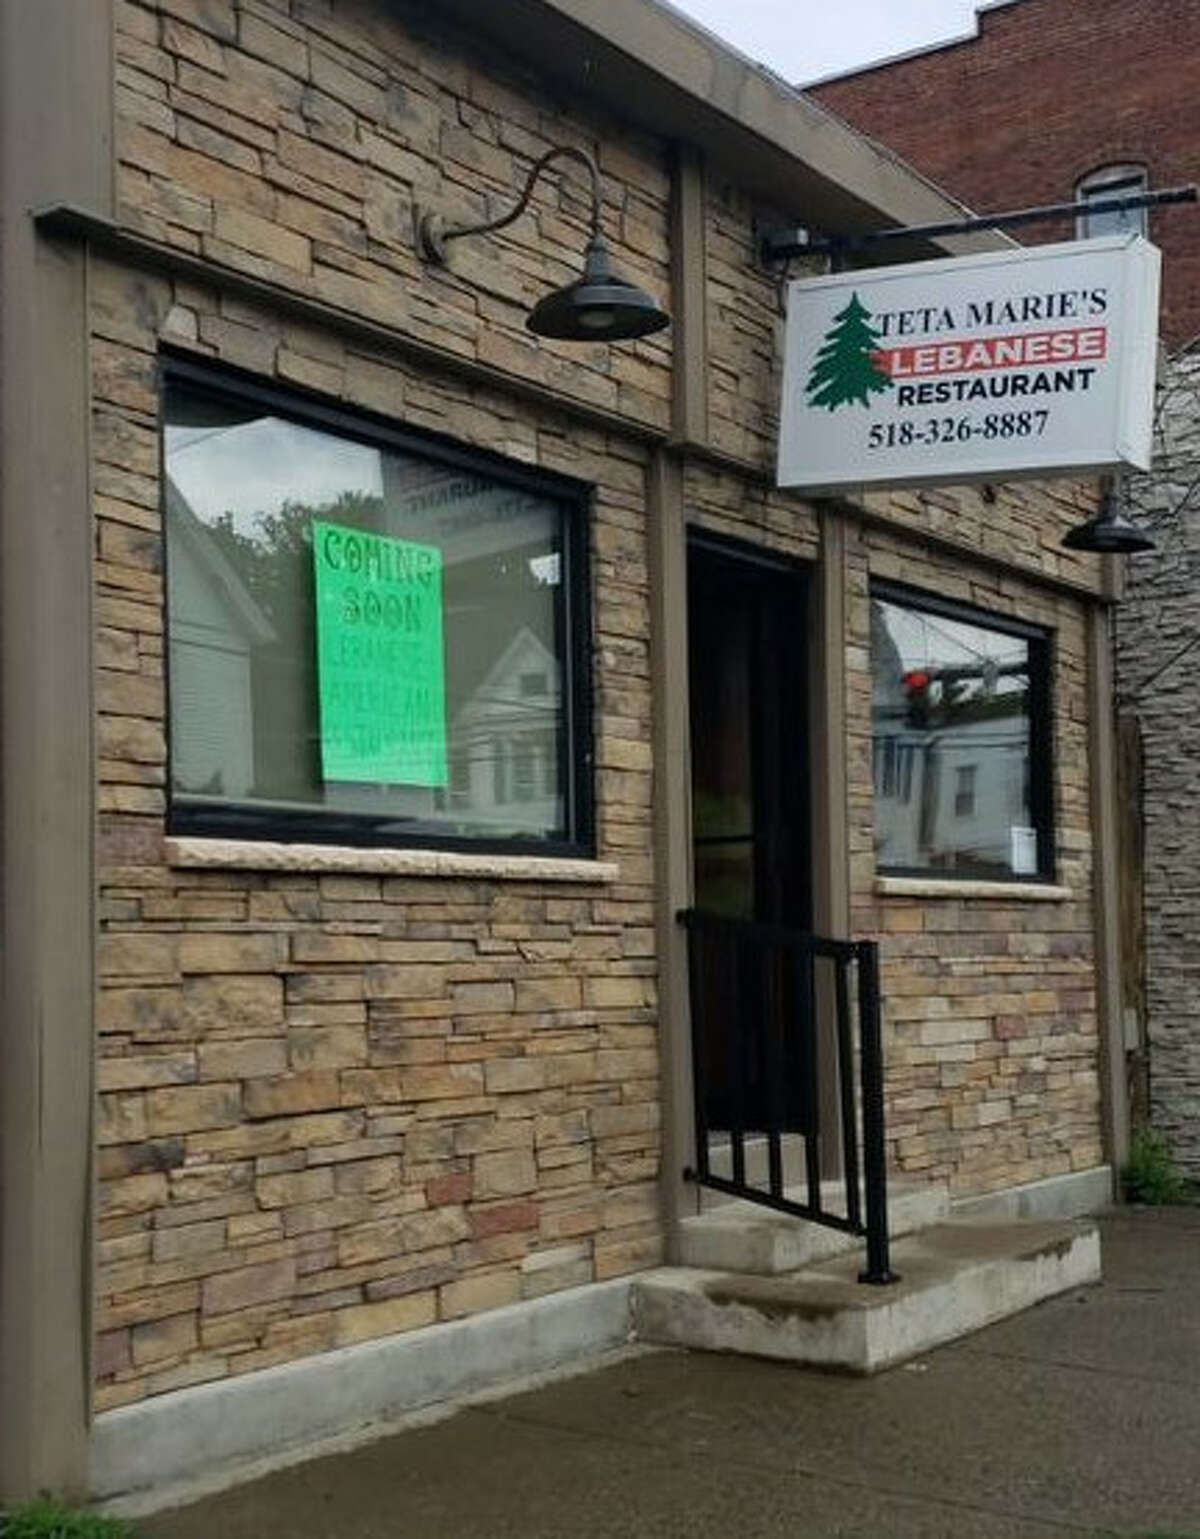 Teta Marie's, a new restaurant featuring Lebanese cuisine, opens with a ribbon-cutting ceremony at 2 p.m. Monday, September 14, followed by a free buffet open to the public from 2 to 4 p.m.